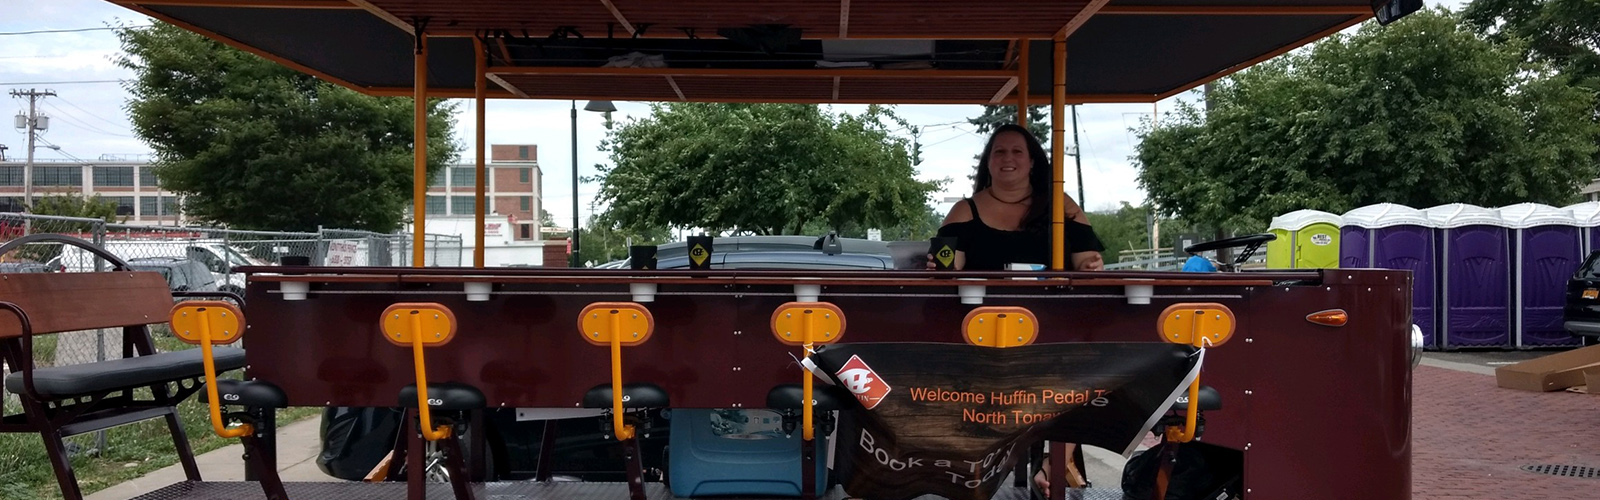 Sarah Ivory, owner of Huffin Pedal Tours, Western New York's newest Pedal Pub, offers passengers a different way to enjoy North Tonawanda and the Erie Canal. <span class='image-credits'>Huffin Pedal Tours</span>